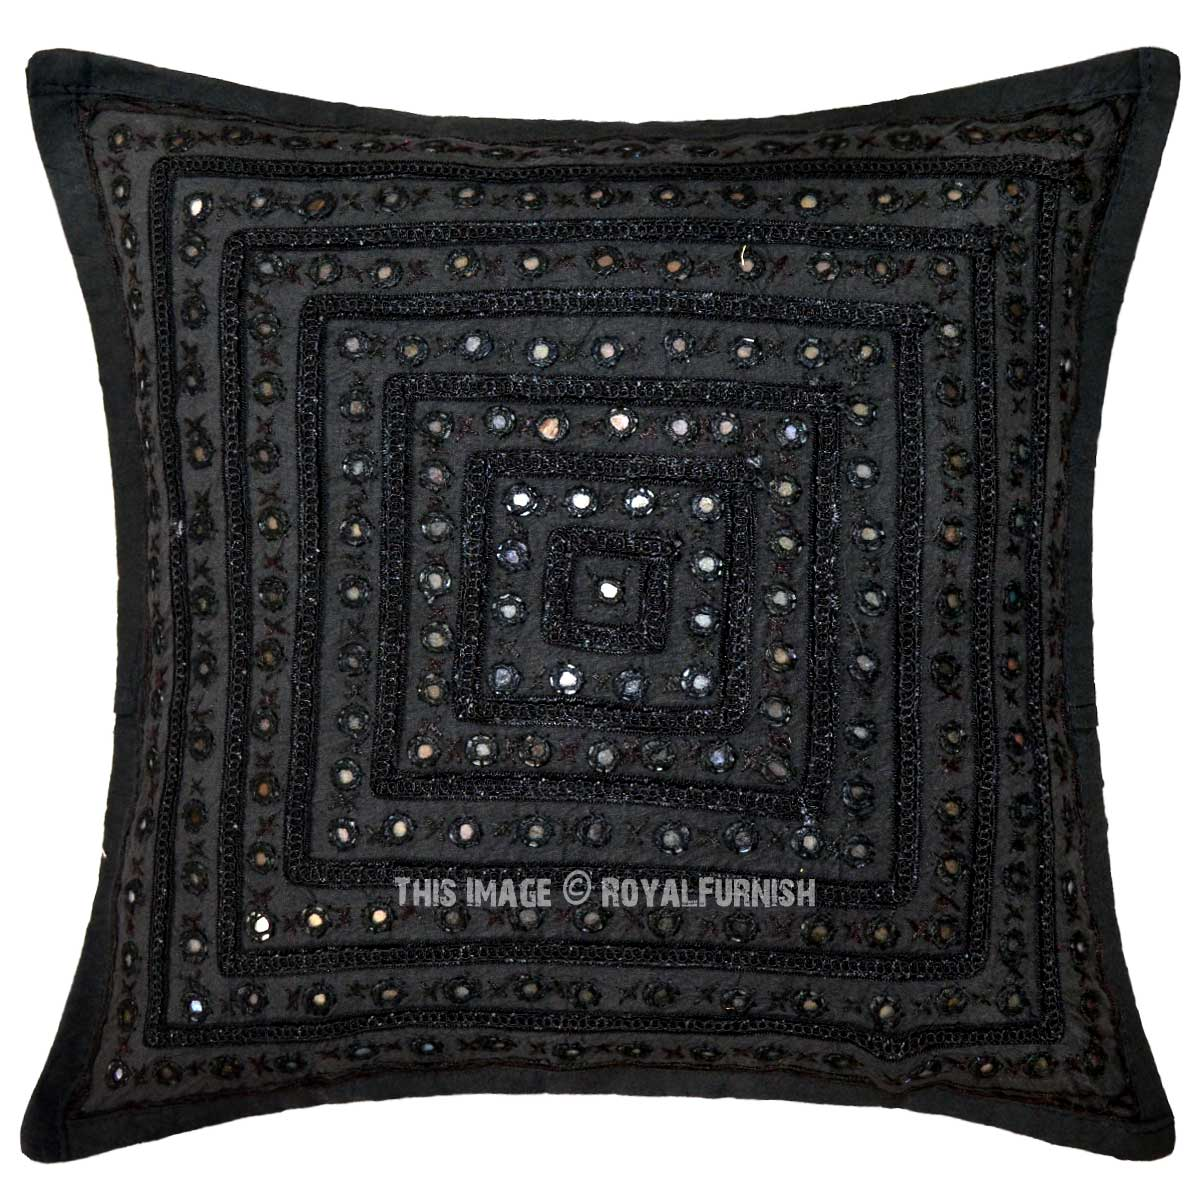 Unique Decorative Throw Pillows : Black Decorative Unique Mirrored Embroidered Throw Pillow Cover 16X16 Inch - RoyalFurnish.com